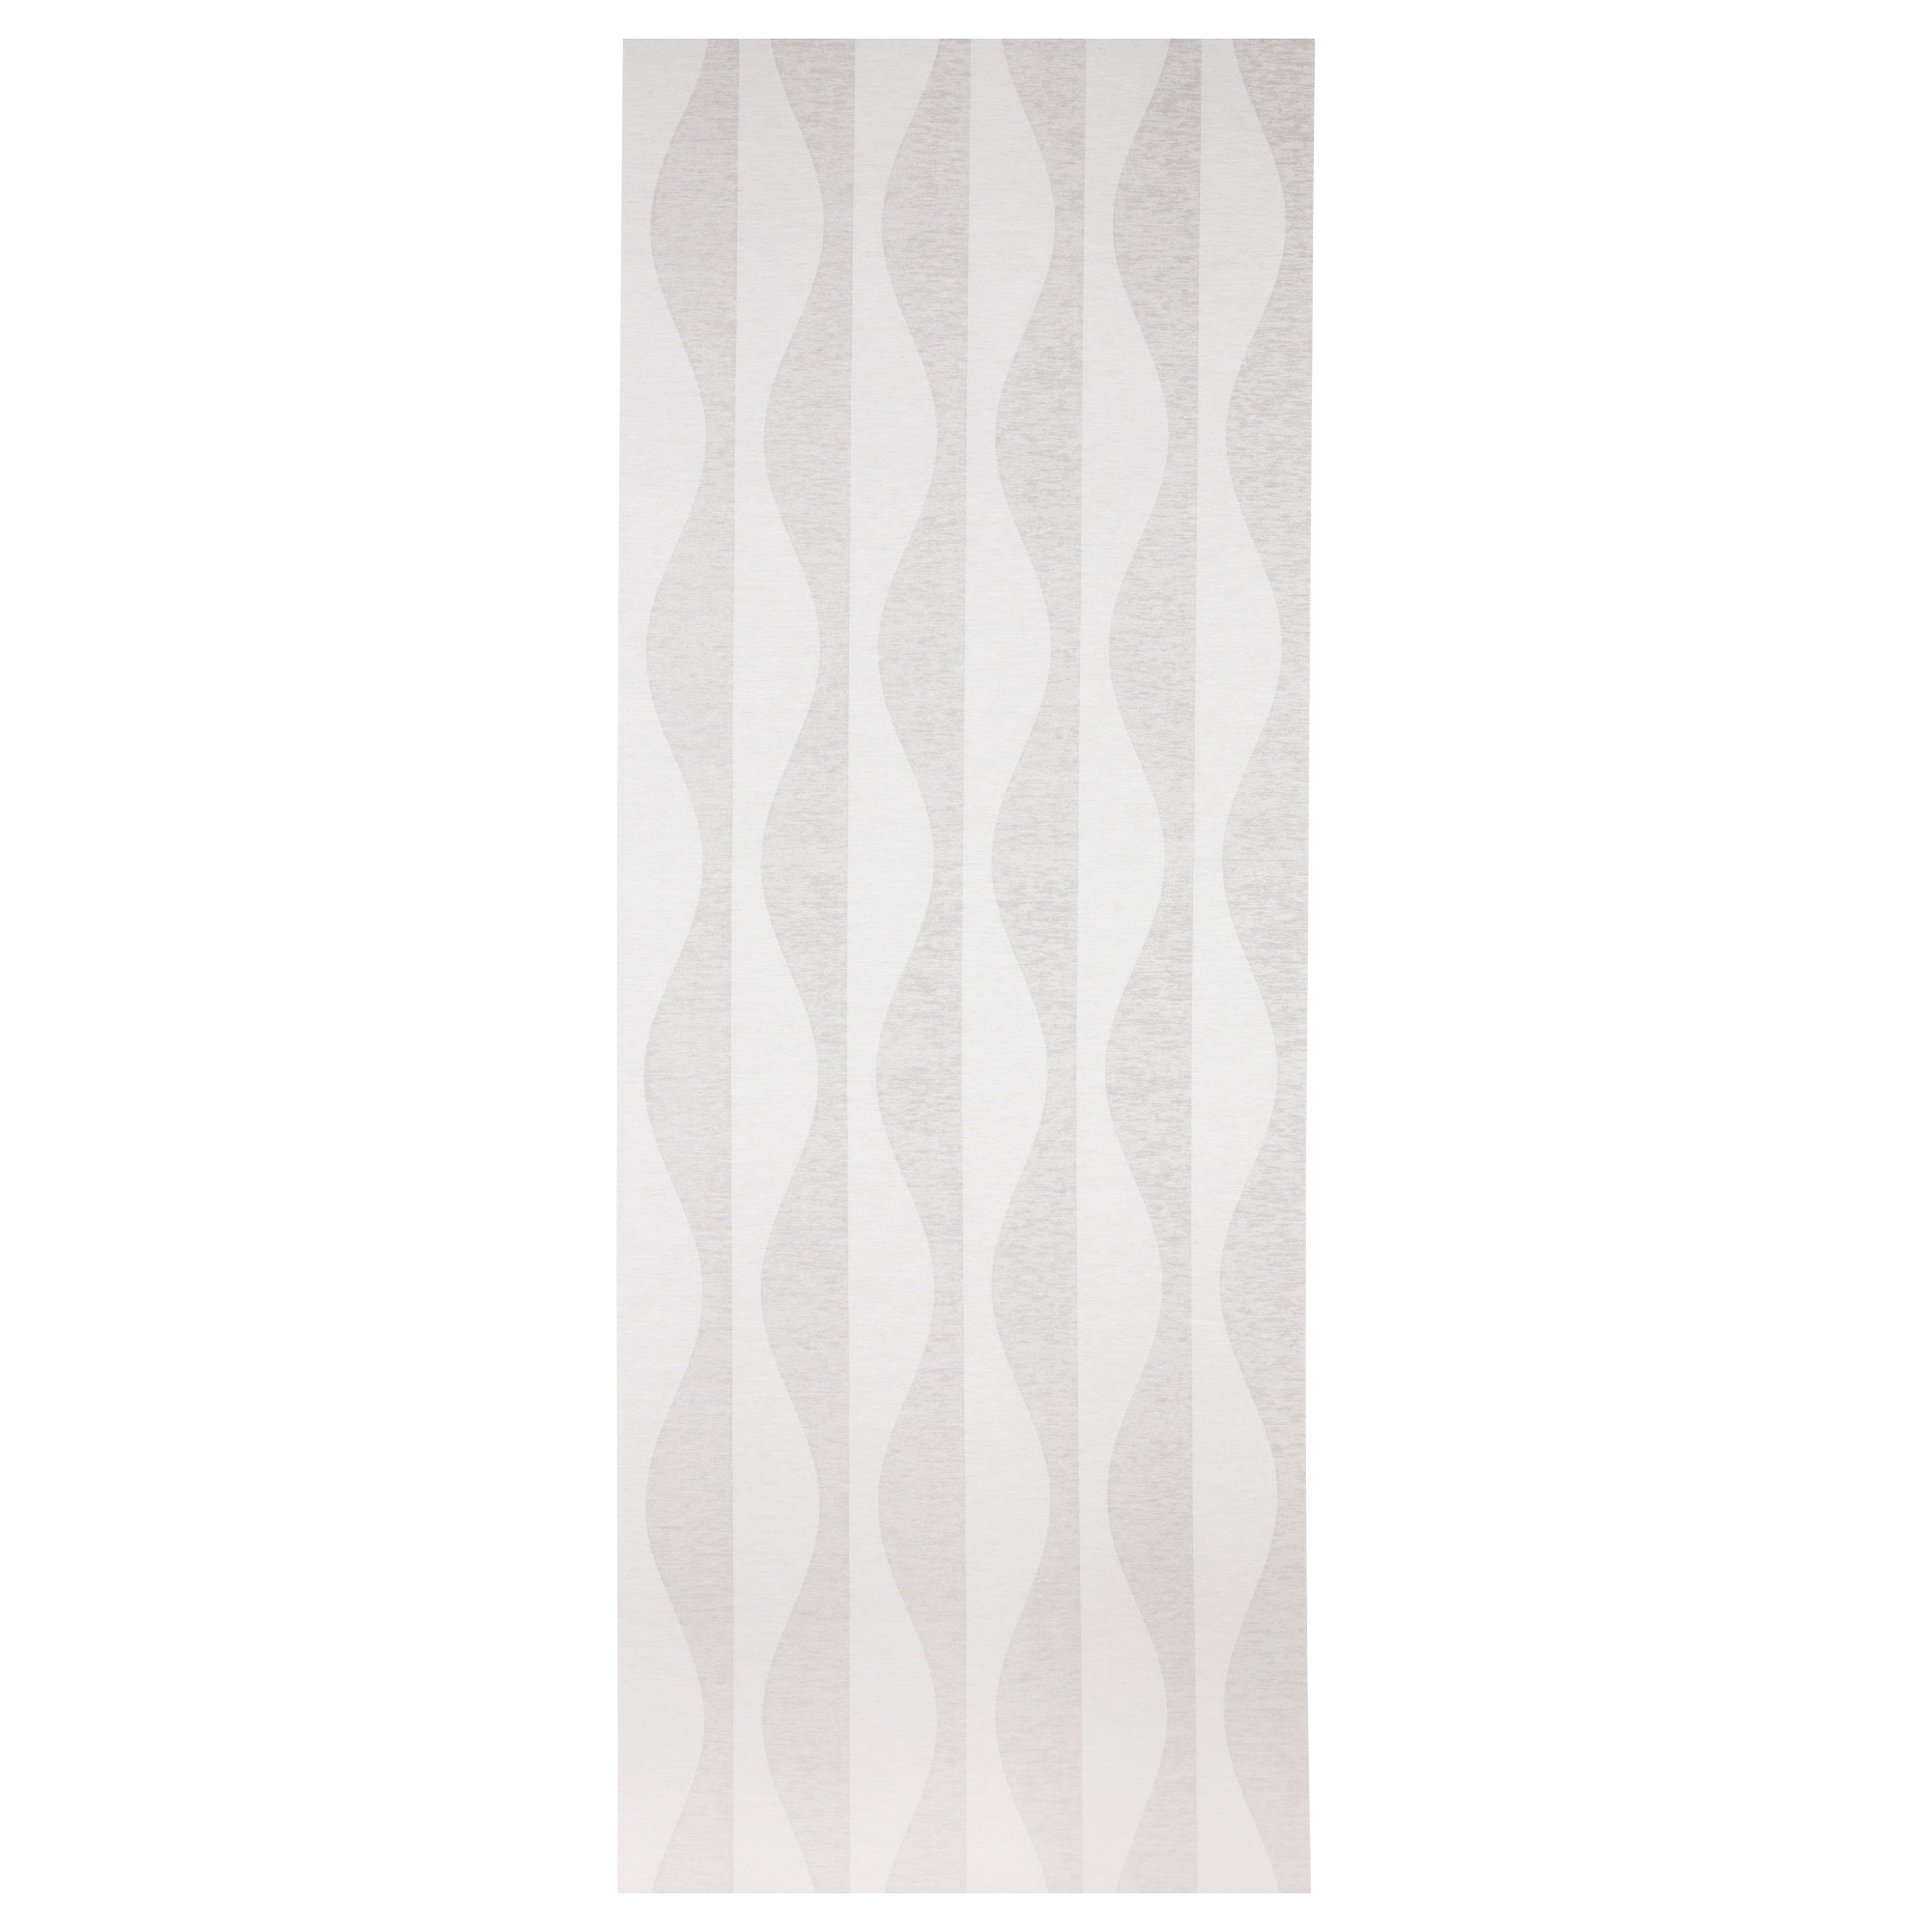 Ikea white curtains with red pattern - Murruta Panel Curtain White Length 118 Width 24 Weight 7